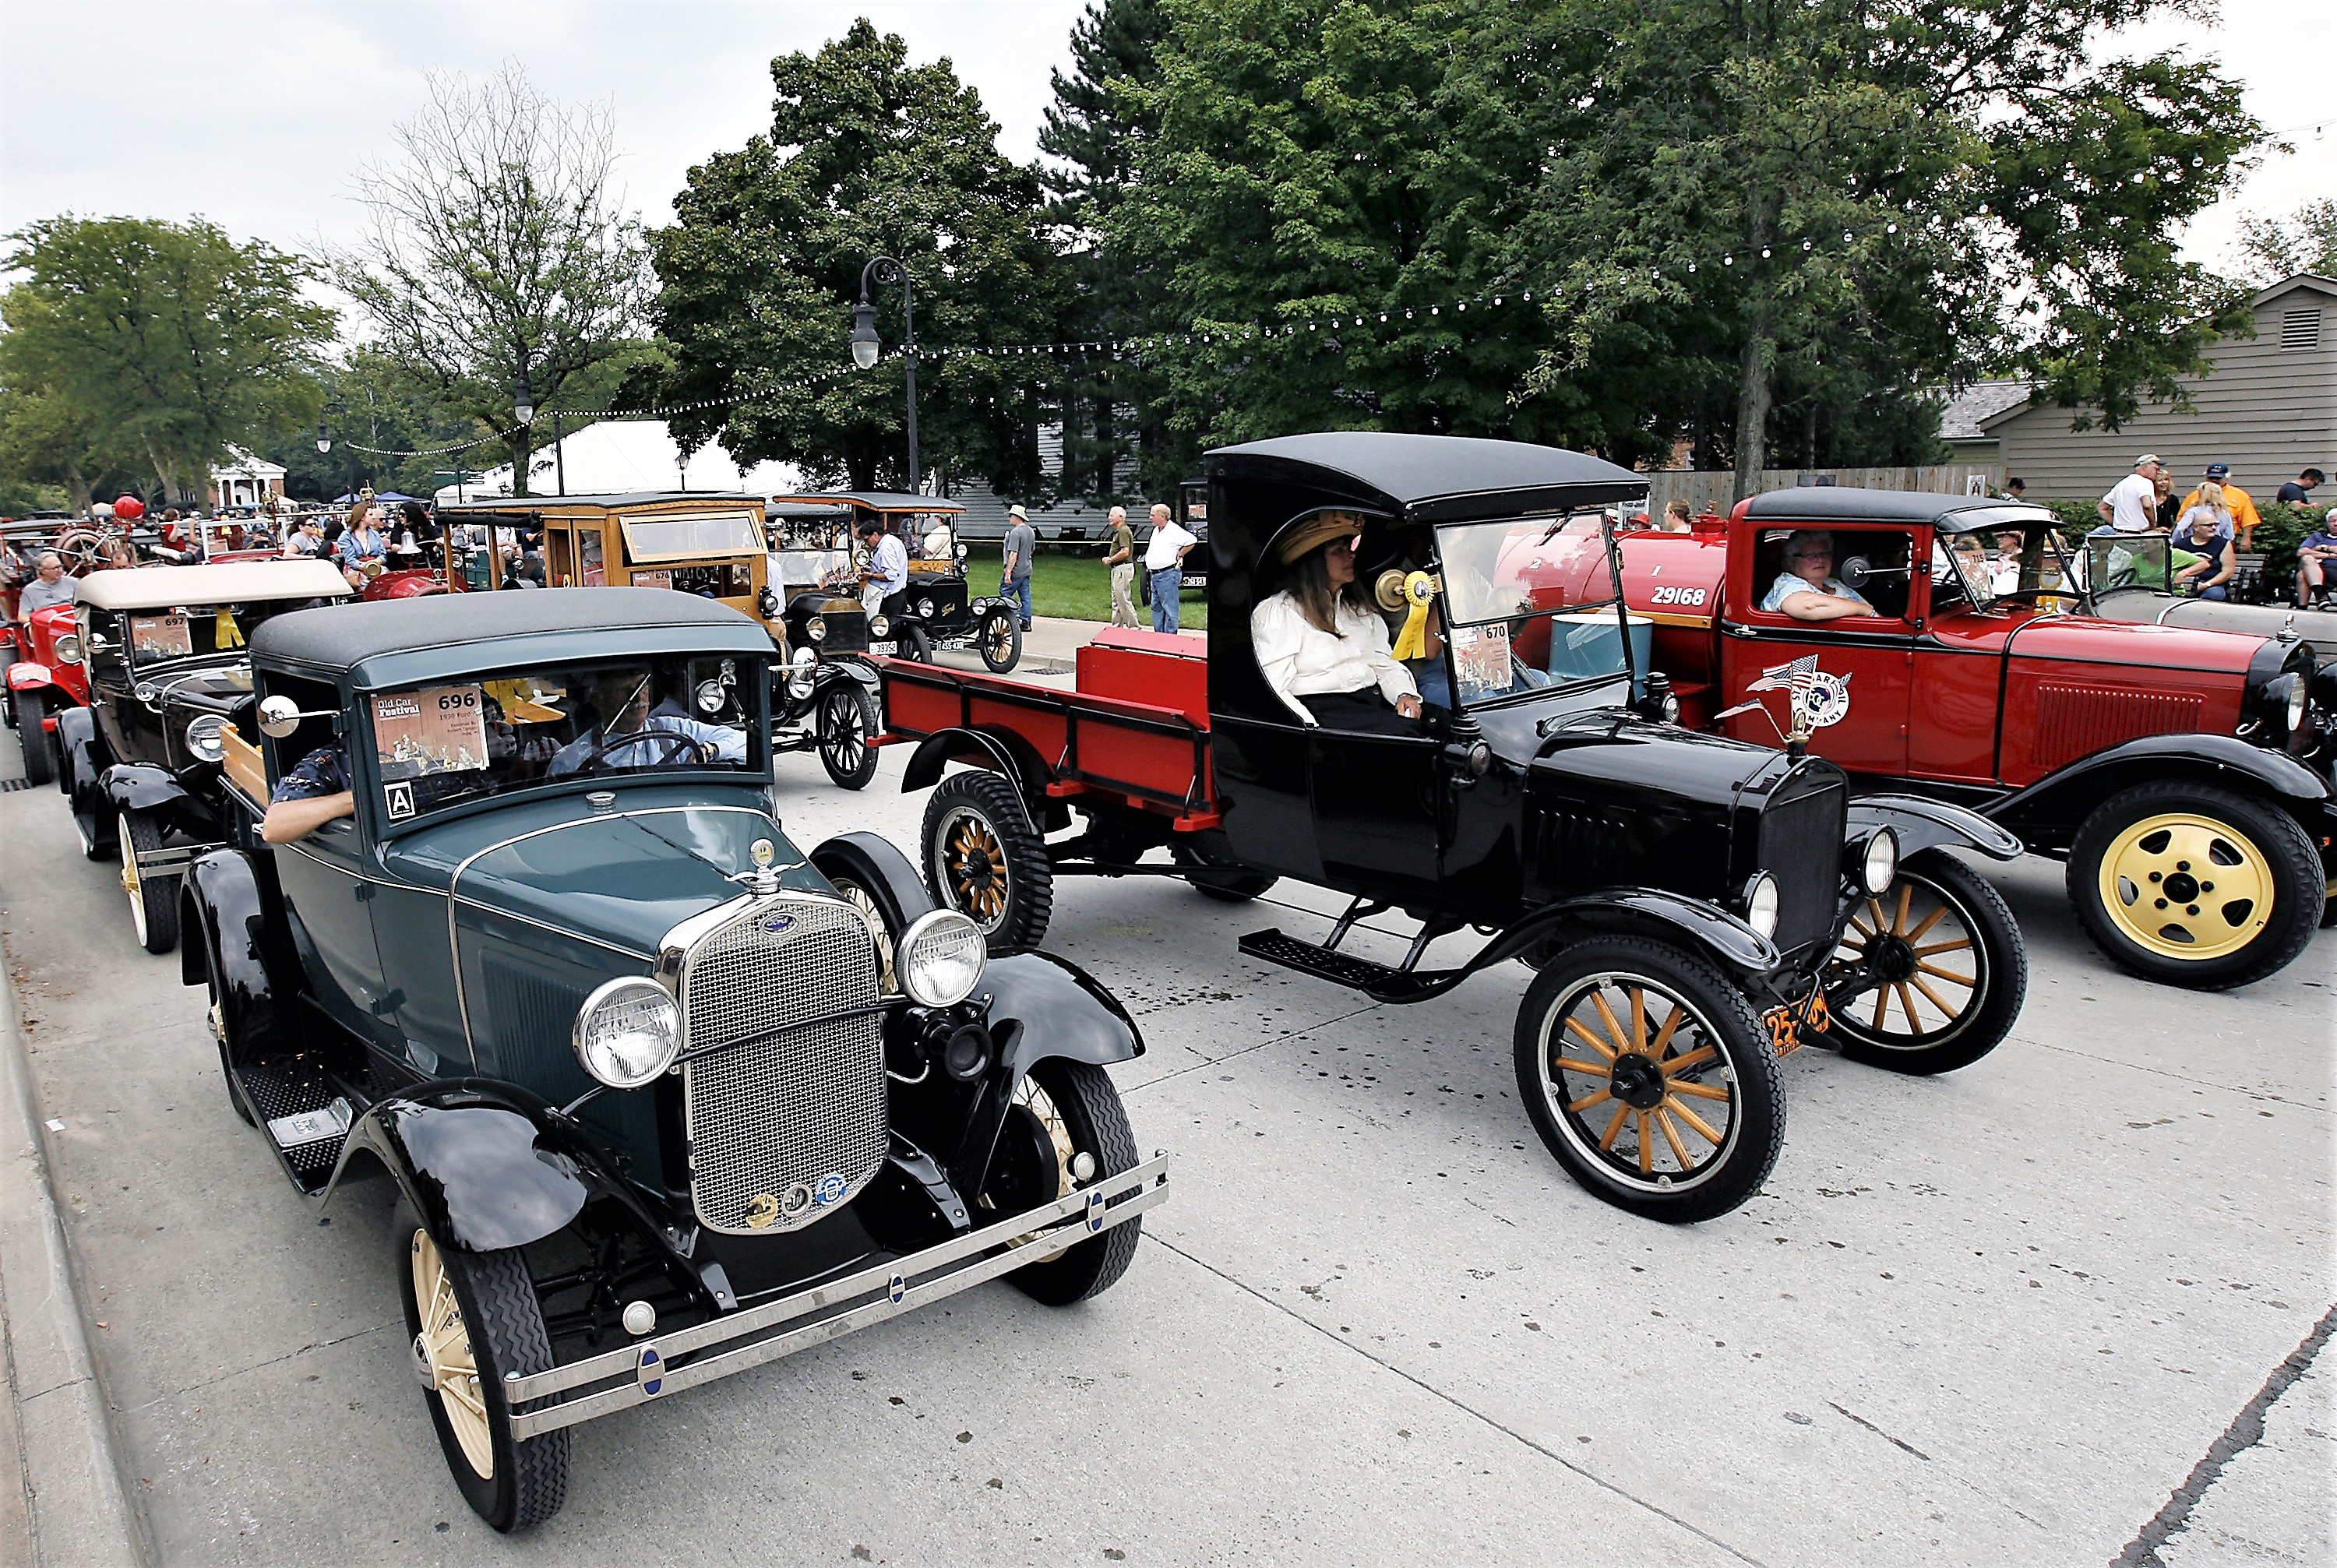 Old Car Festival, splendor in France, and new upcoming events ...